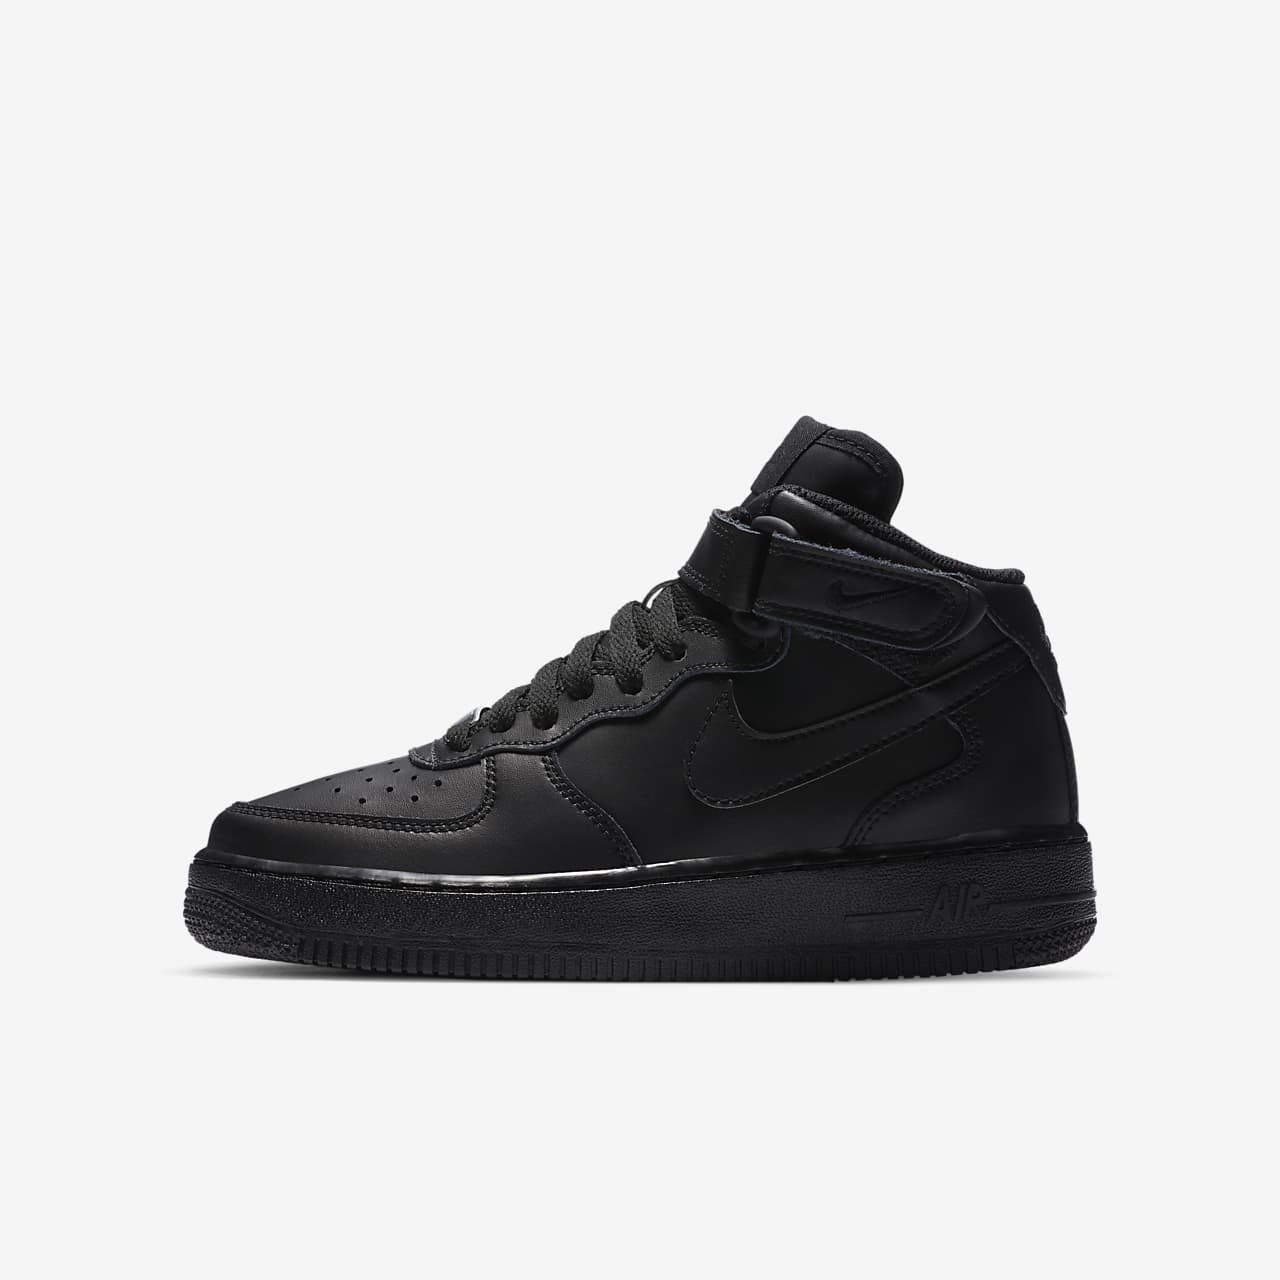 lowest price 8b96b 8f243 ... Chaussure Nike Air Force 1 06 mi-montante pour Garccedilon